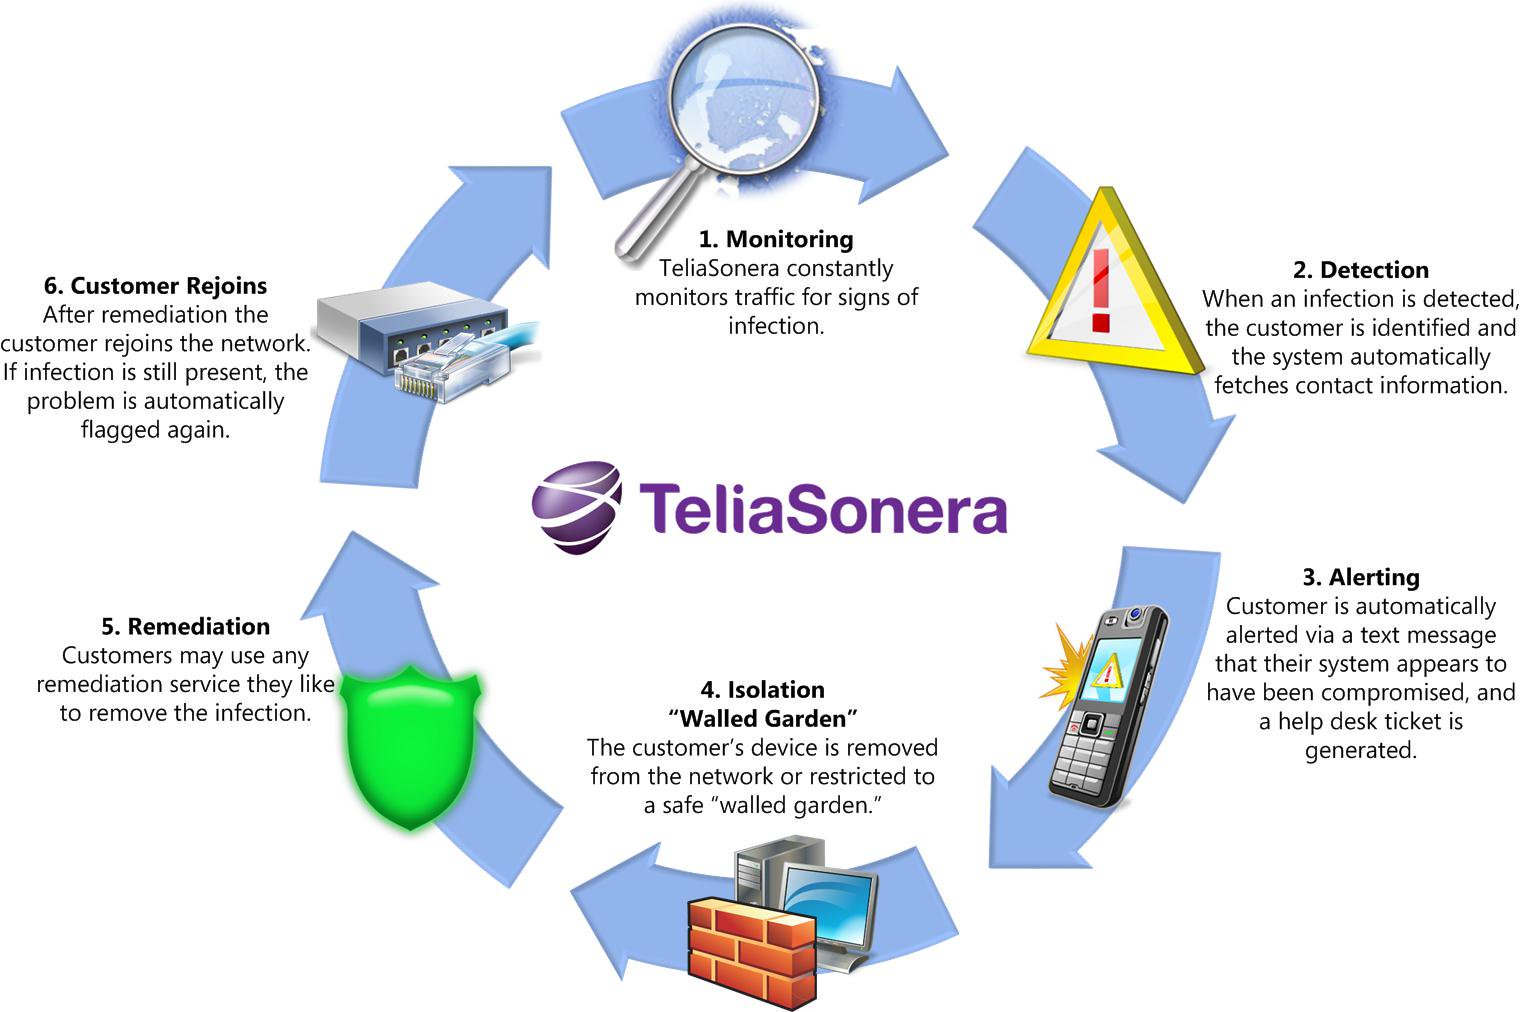 TeliaSonerau0027s Incredible Innovations, And A Genuine Pride In Being The  U0027cleanest Of The Cleanu0027, Have Helped It Earn A Reputation For Safe  Computing.